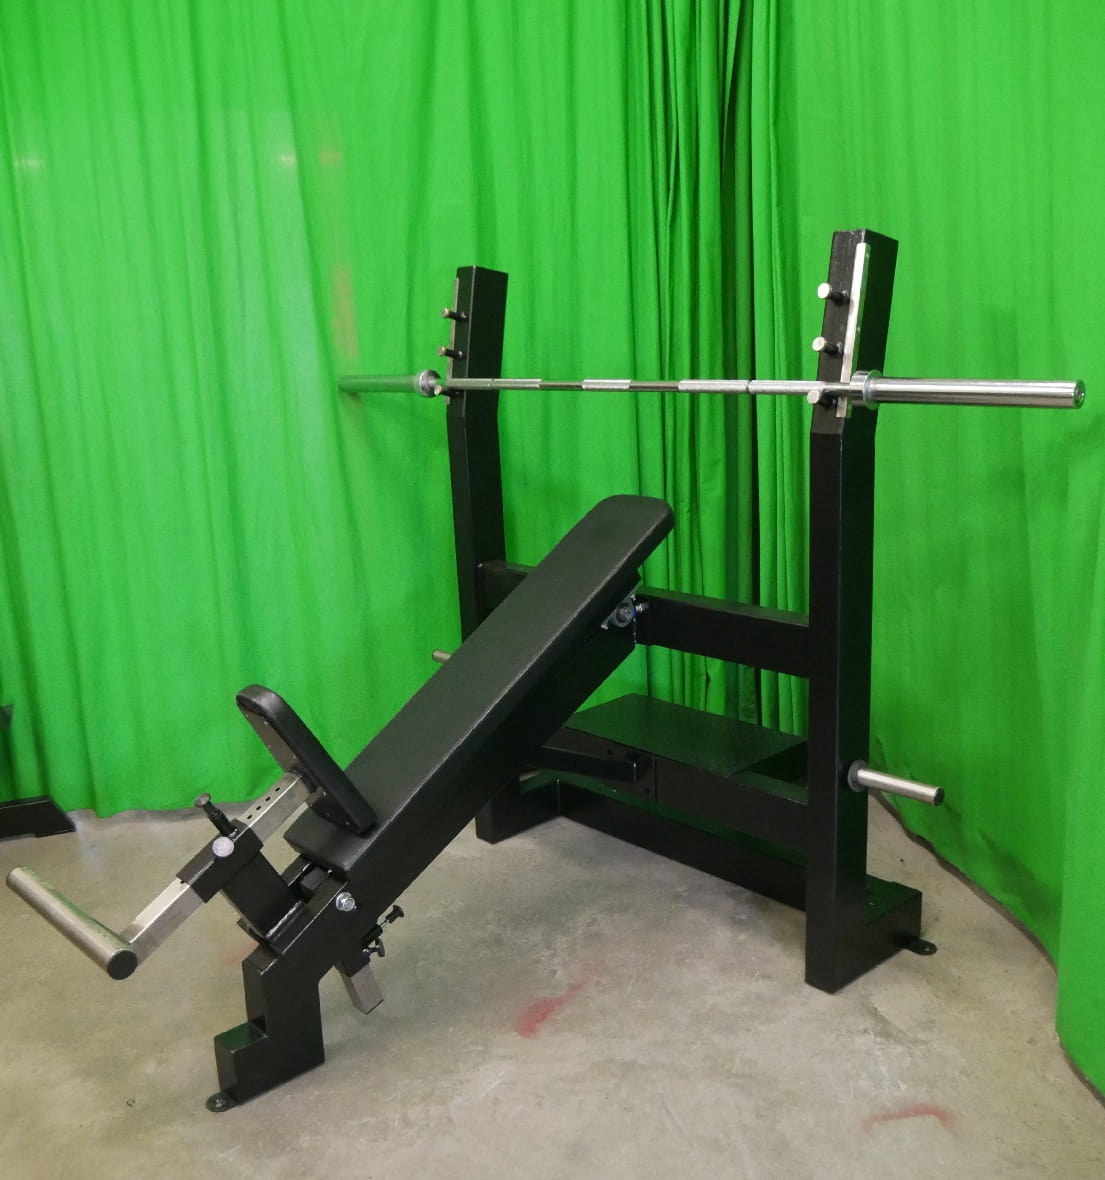 Incline-bench-press-adjustable-a2x